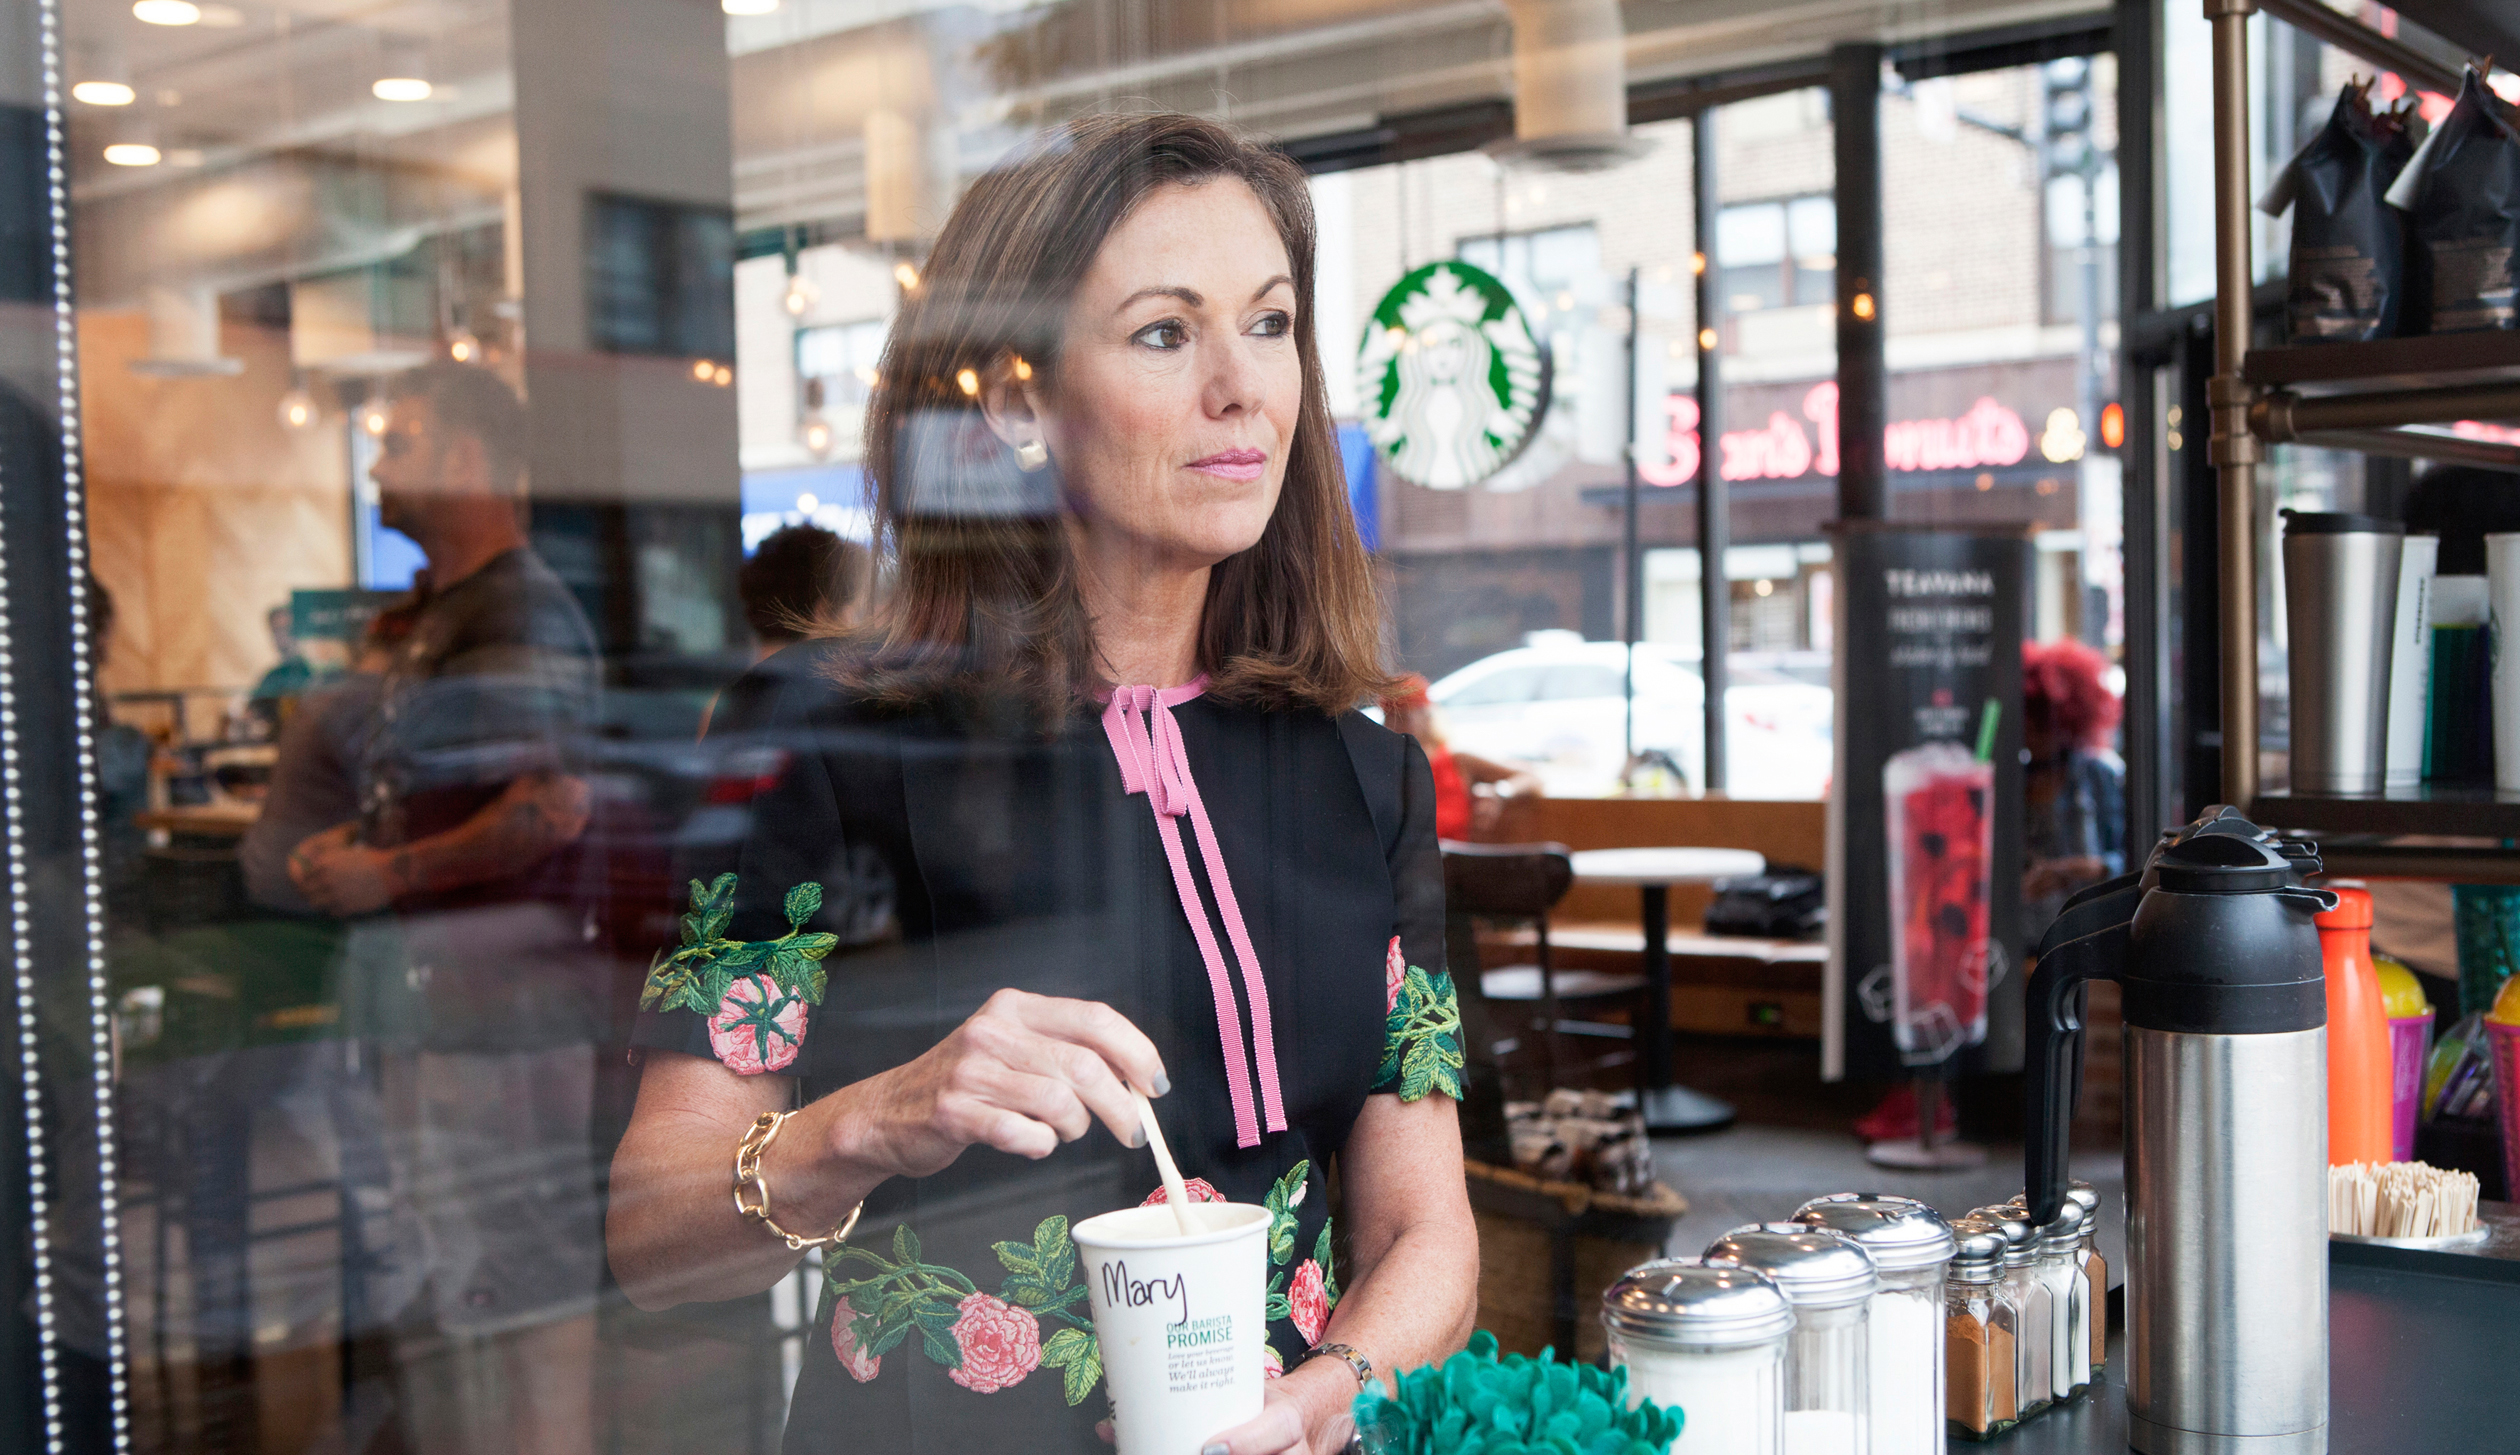 7:02 a.m. Dillon at a Starbucks in Naperville Ill. She recently joined the company's board